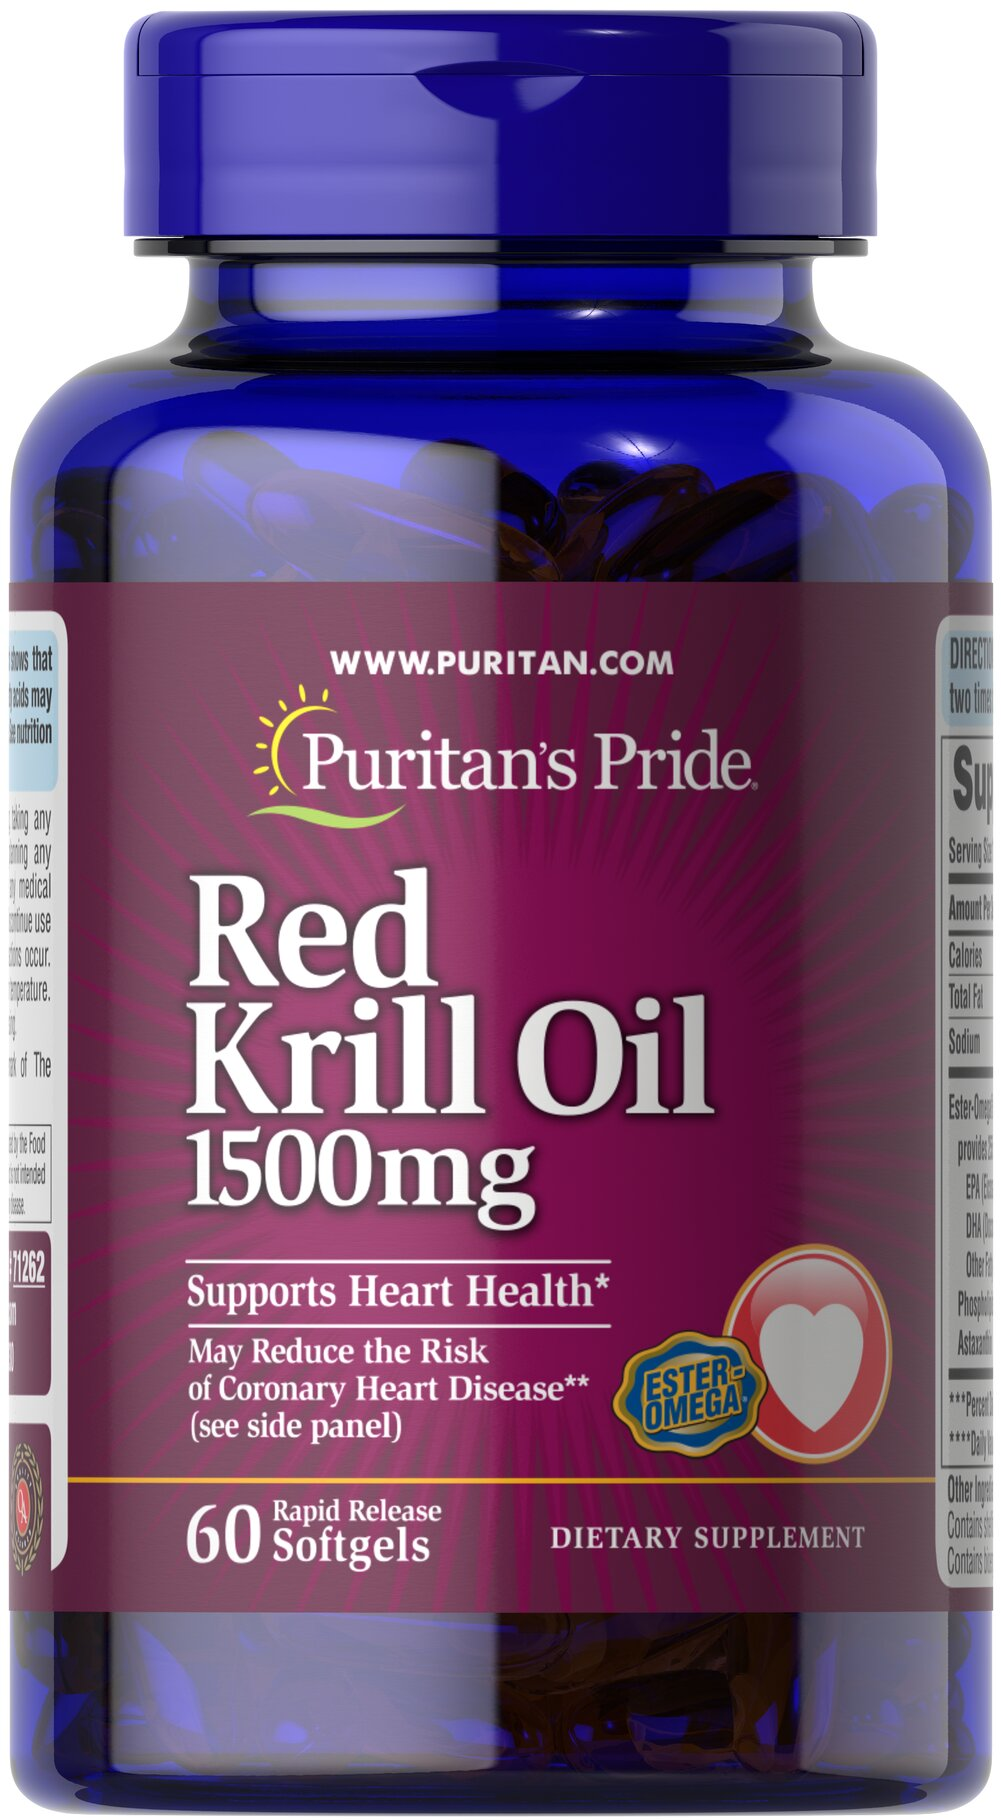 "Maximum Strength Red Krill Oil 1500 mg (255 mg Active Omega-3) <p><strong>With Naturally Occurring Astaxanthin</strong></p><p>Supports a healthy heart.**</p><p>Provides you with Omega-3 fatty acids — the ""good"" fats important for cellular and metabolic health.**</p><p></p><p>Rapid Release softgels facilitate quick absorption.**</p><p></p> 60 Softgels 1500 mg"